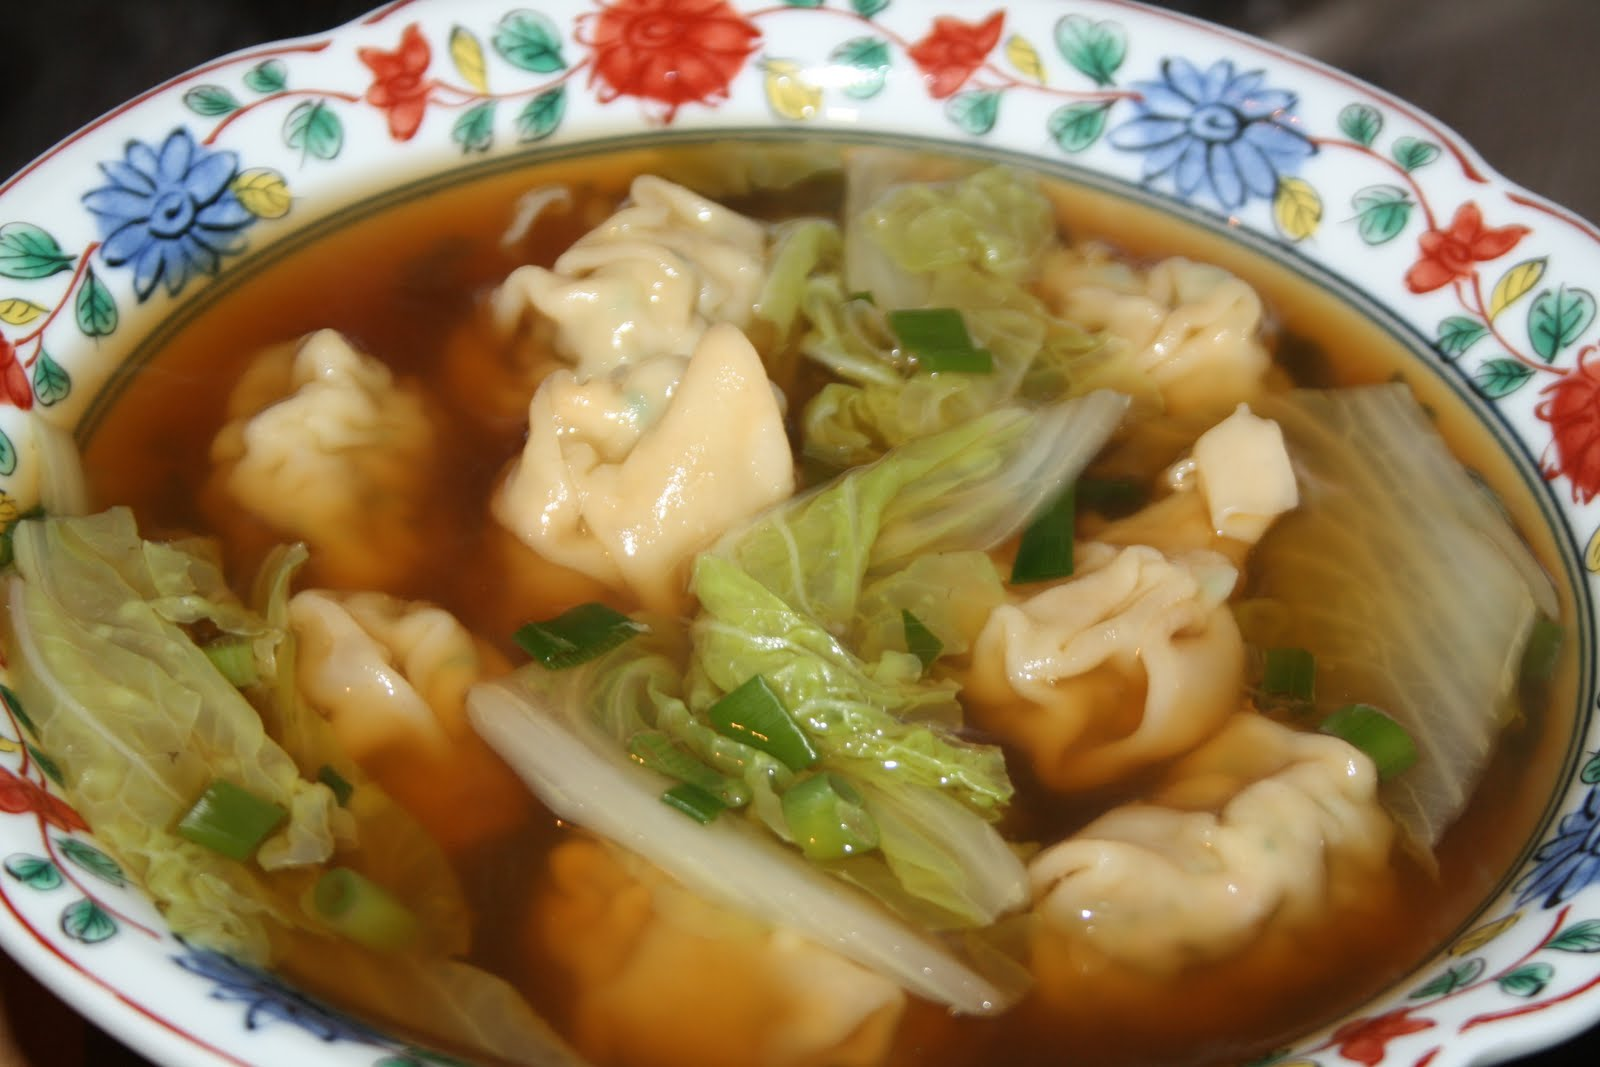 Home » Chinese Cabbage » RECIPE: Classic Won Ton Soup